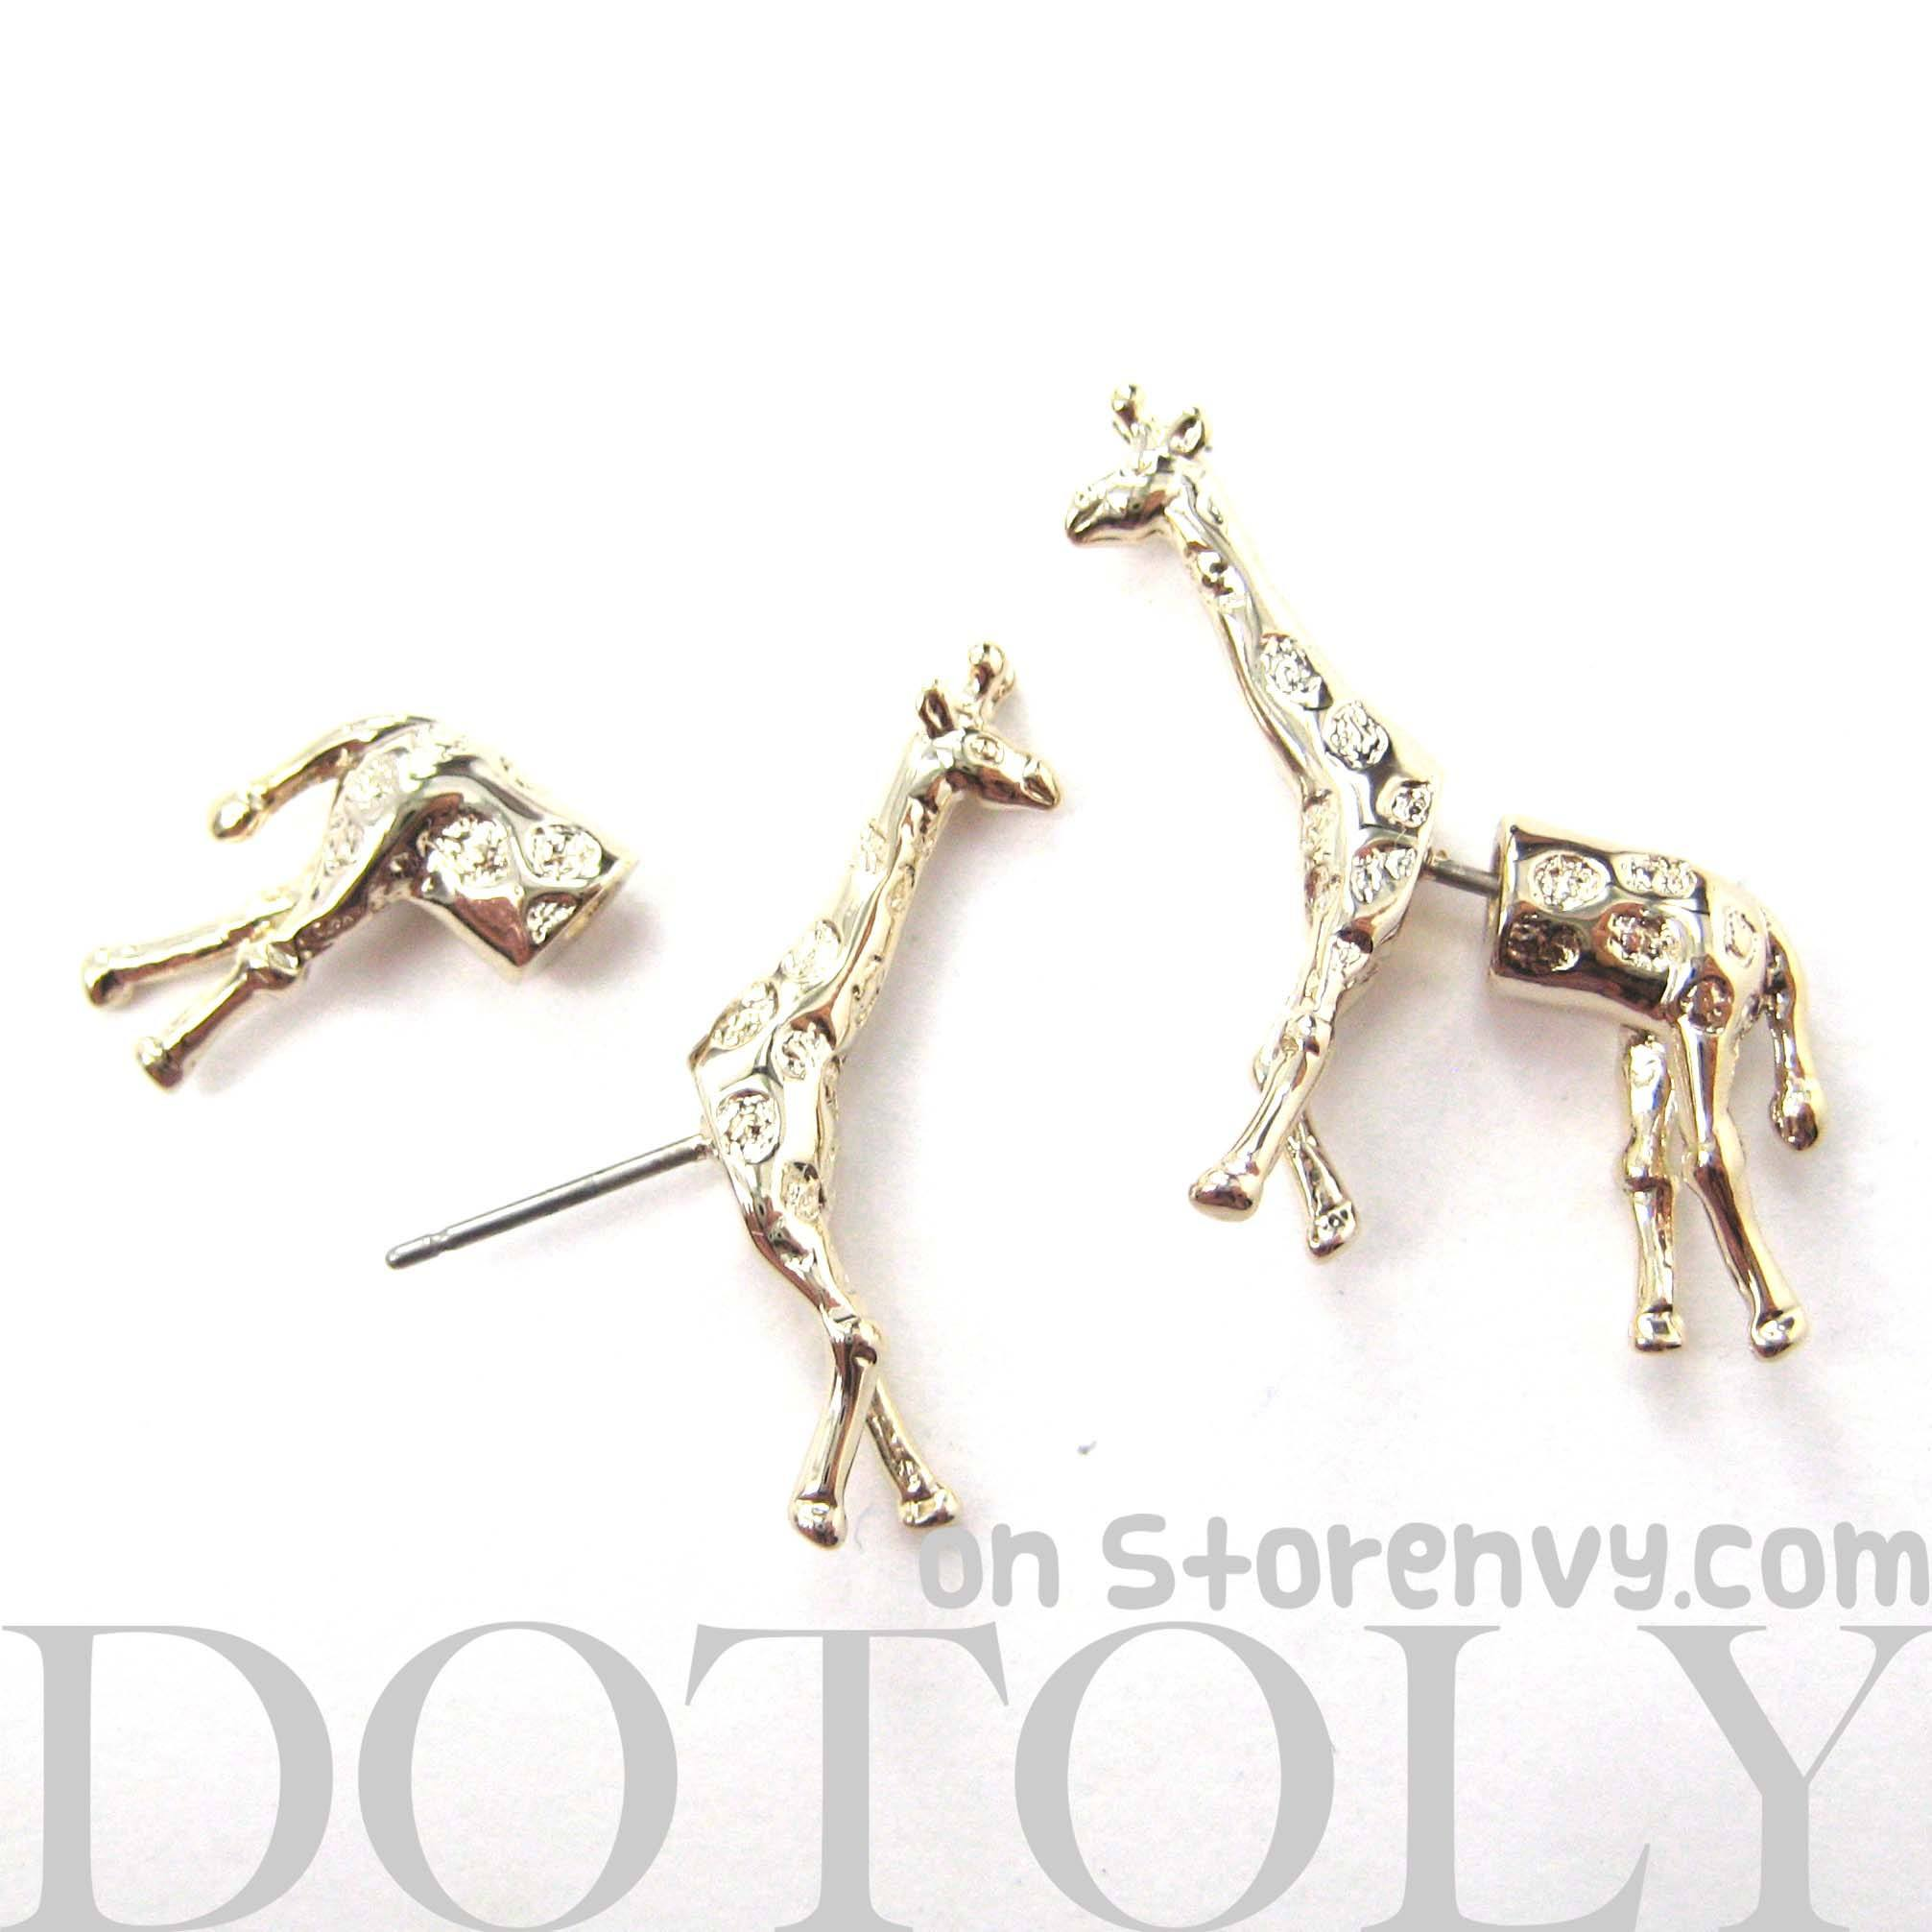 Fake Gauge Earrings: Realistic Giraffe Shaped Animal Faux Plug Stud Earrings in Shiny Gold